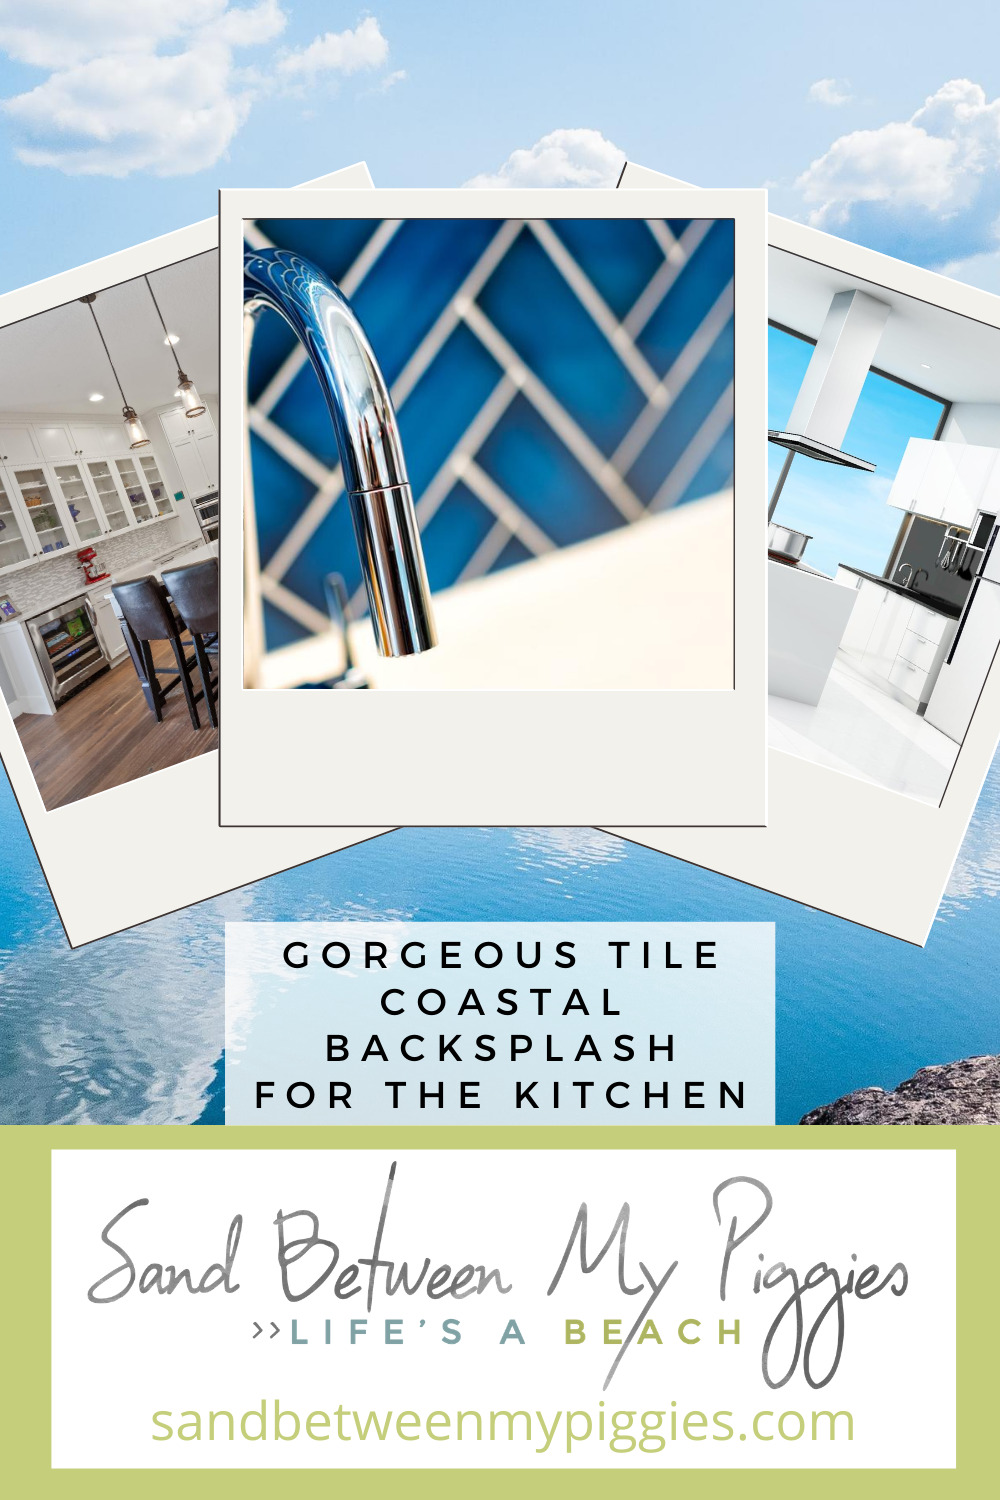 Beach kitchens are all the rage this season! Use these coastal backsplash ideas to complete your coastal kitchen. #coastal #home #sandbetweenmypiggiesblog